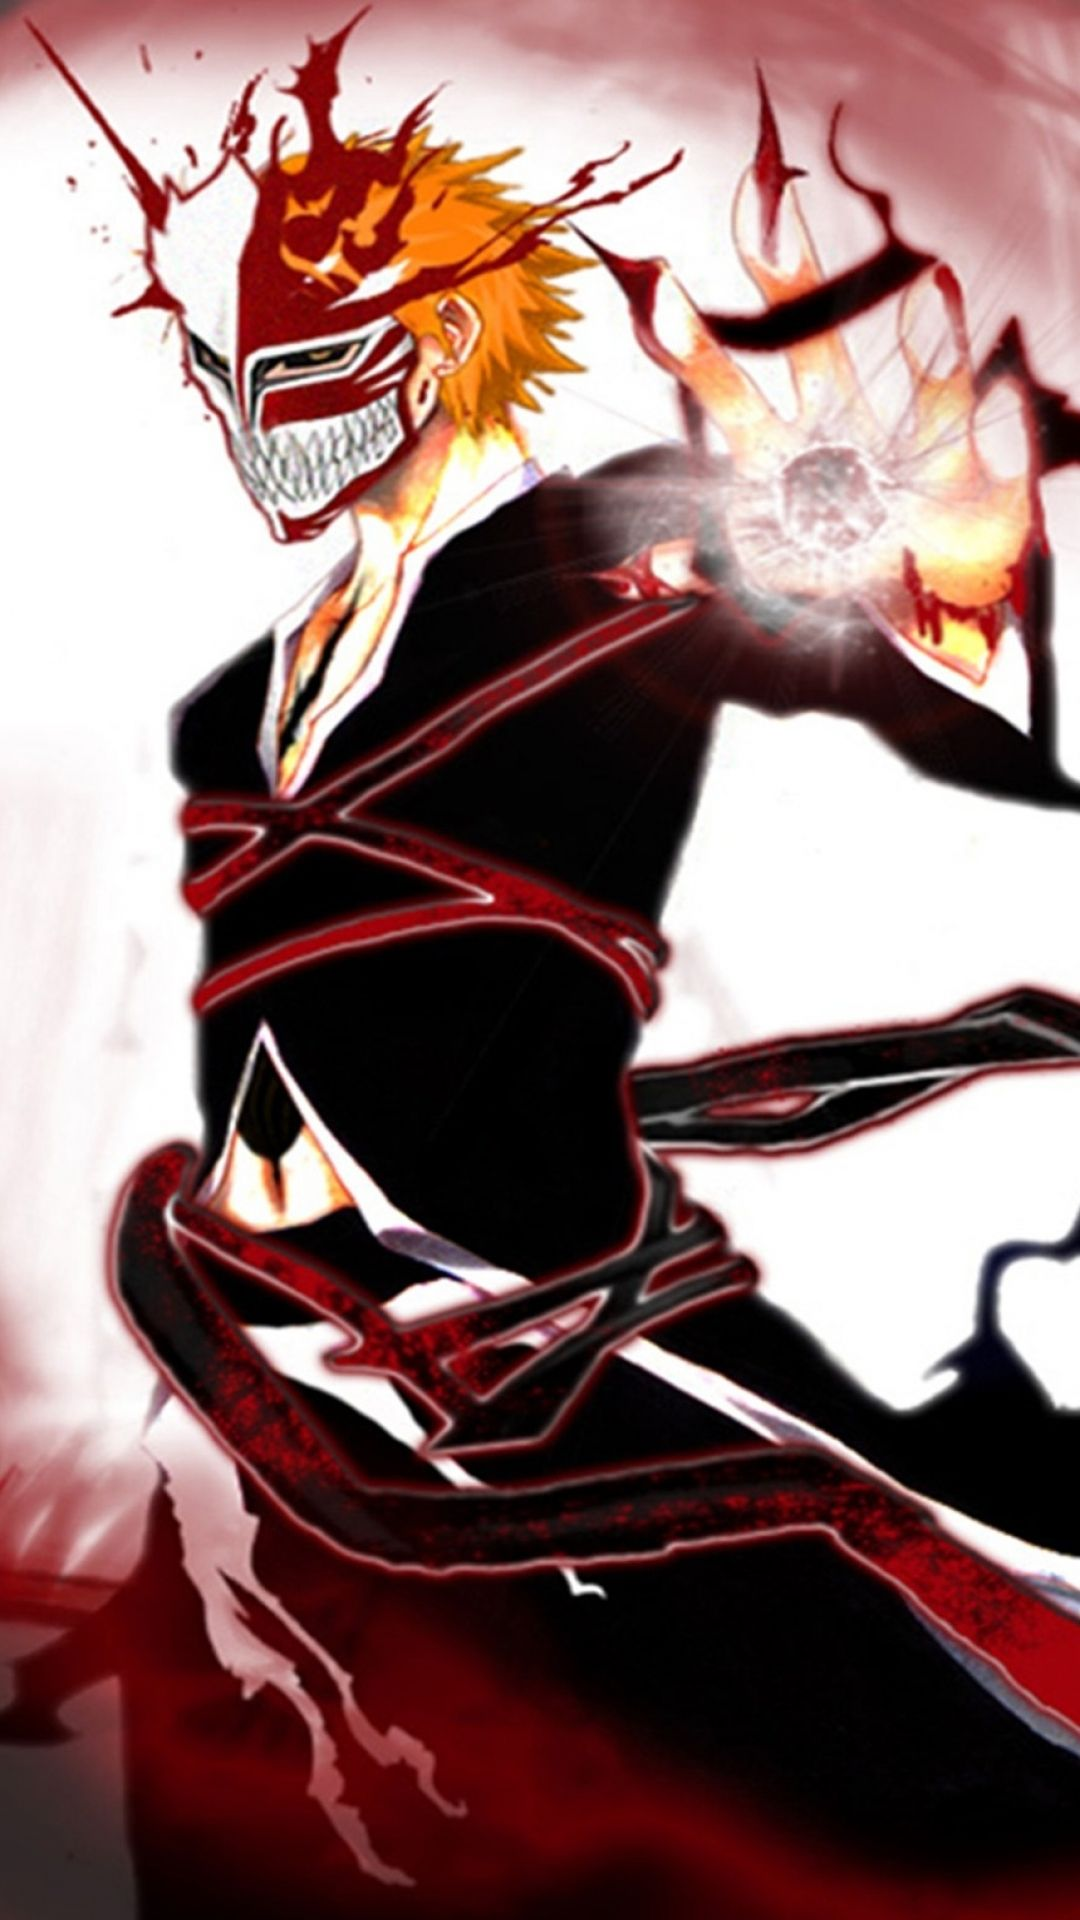 iPhone 6 Plus Anime/Bleach Wallpaper ID 104011